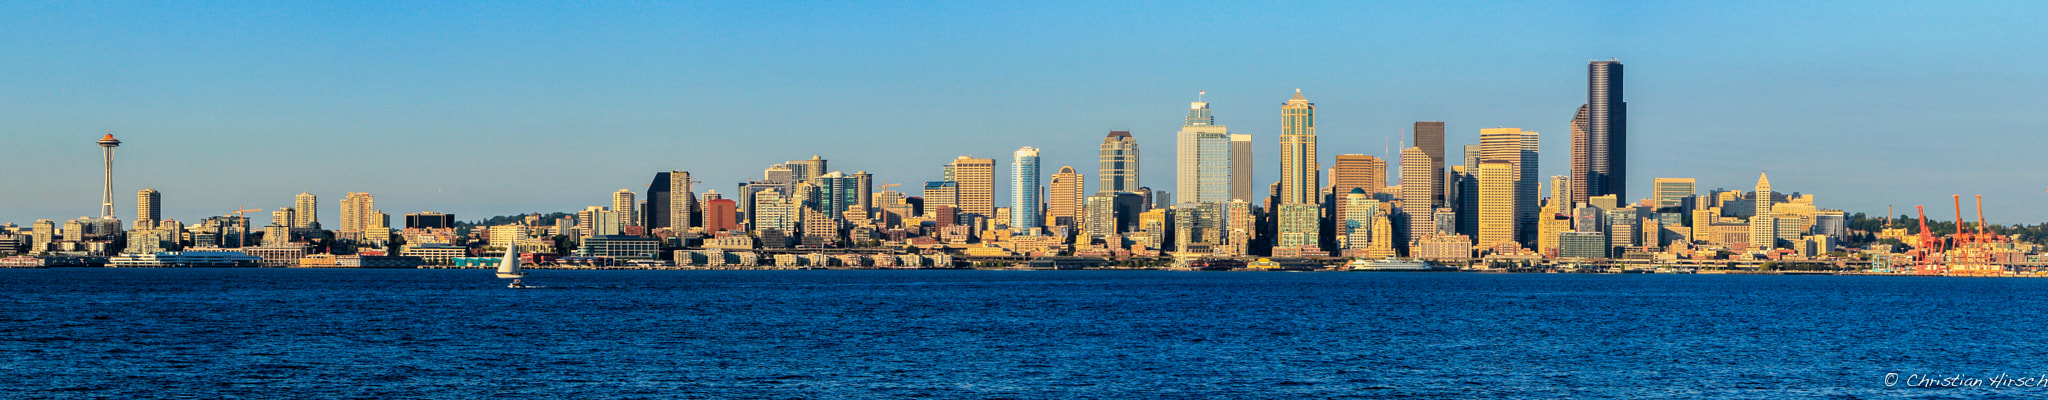 Photograph seattle skyline by Christian Hirsch on 500px